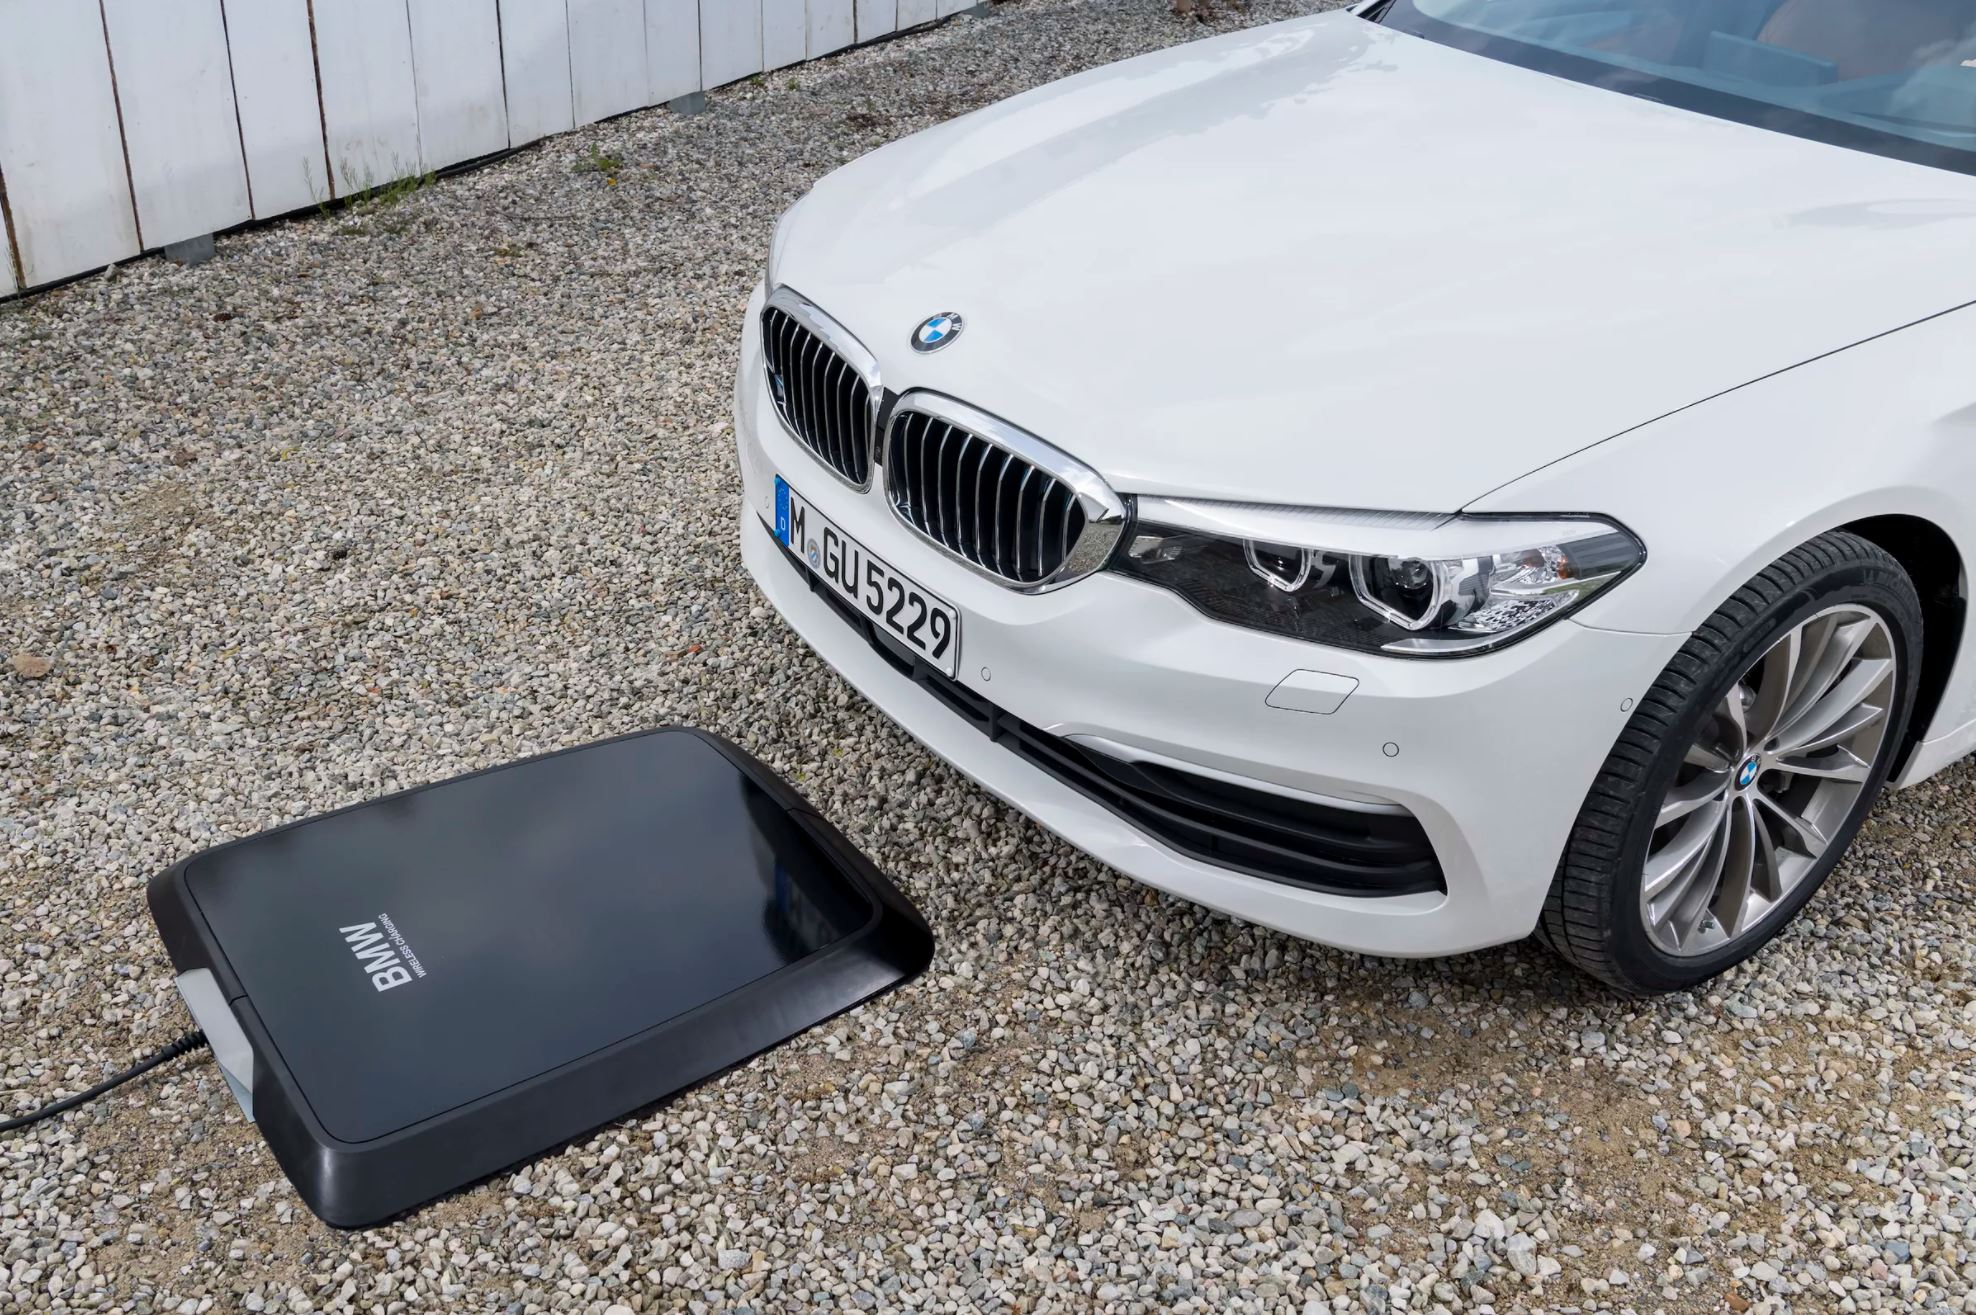 home hybrid natural halo of generation gallery bmw all new coup leather brown textile lines asset mix white plug ivory carmum en line coupe the features dalbergia models in grey charging i